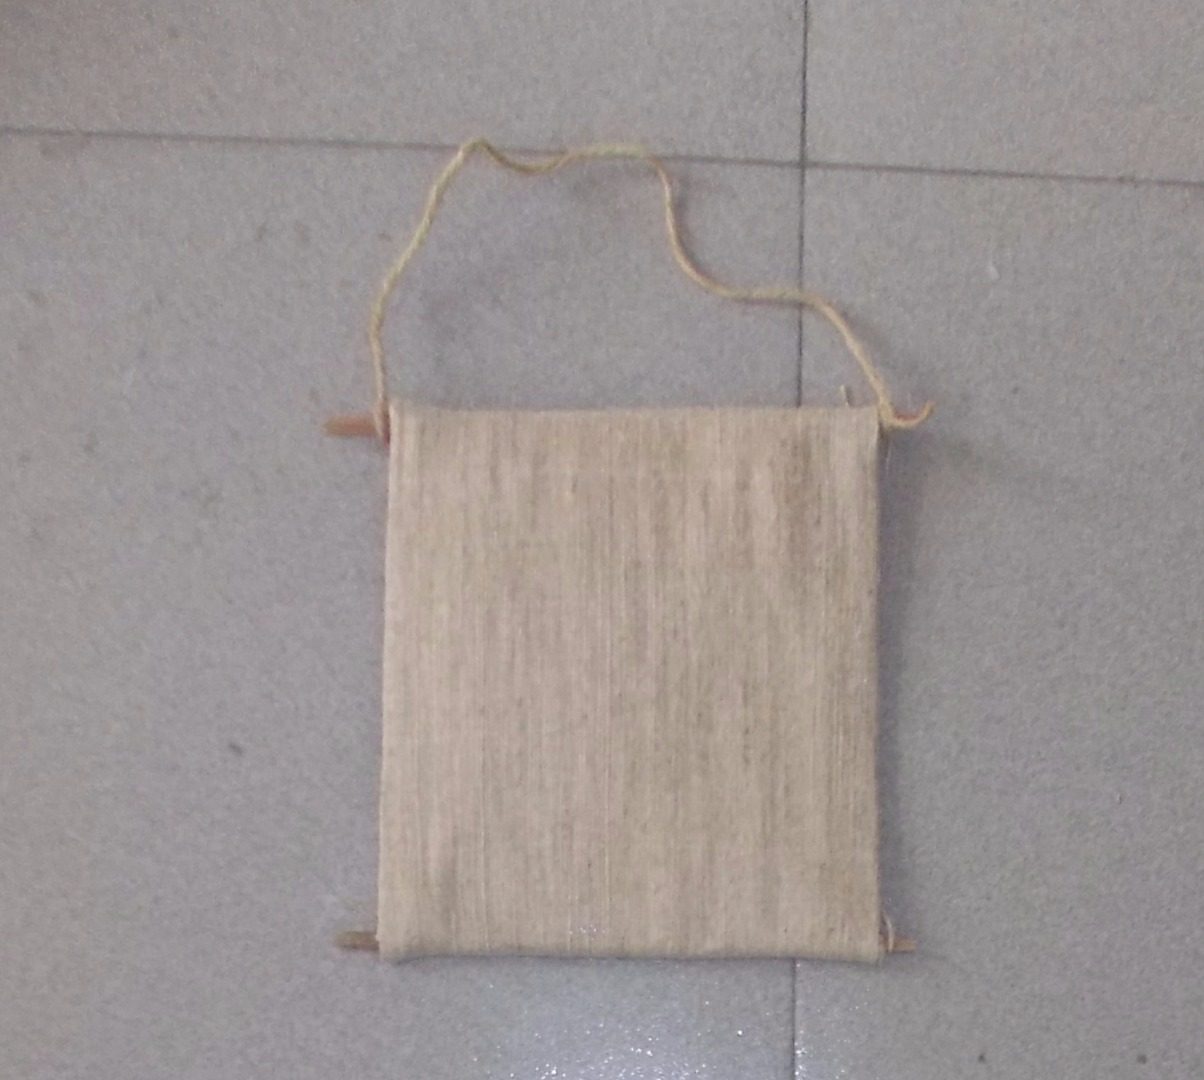 Picture of Cut a Hemp String to Tie 2 Ends at the Top of the Curtain to Hang.